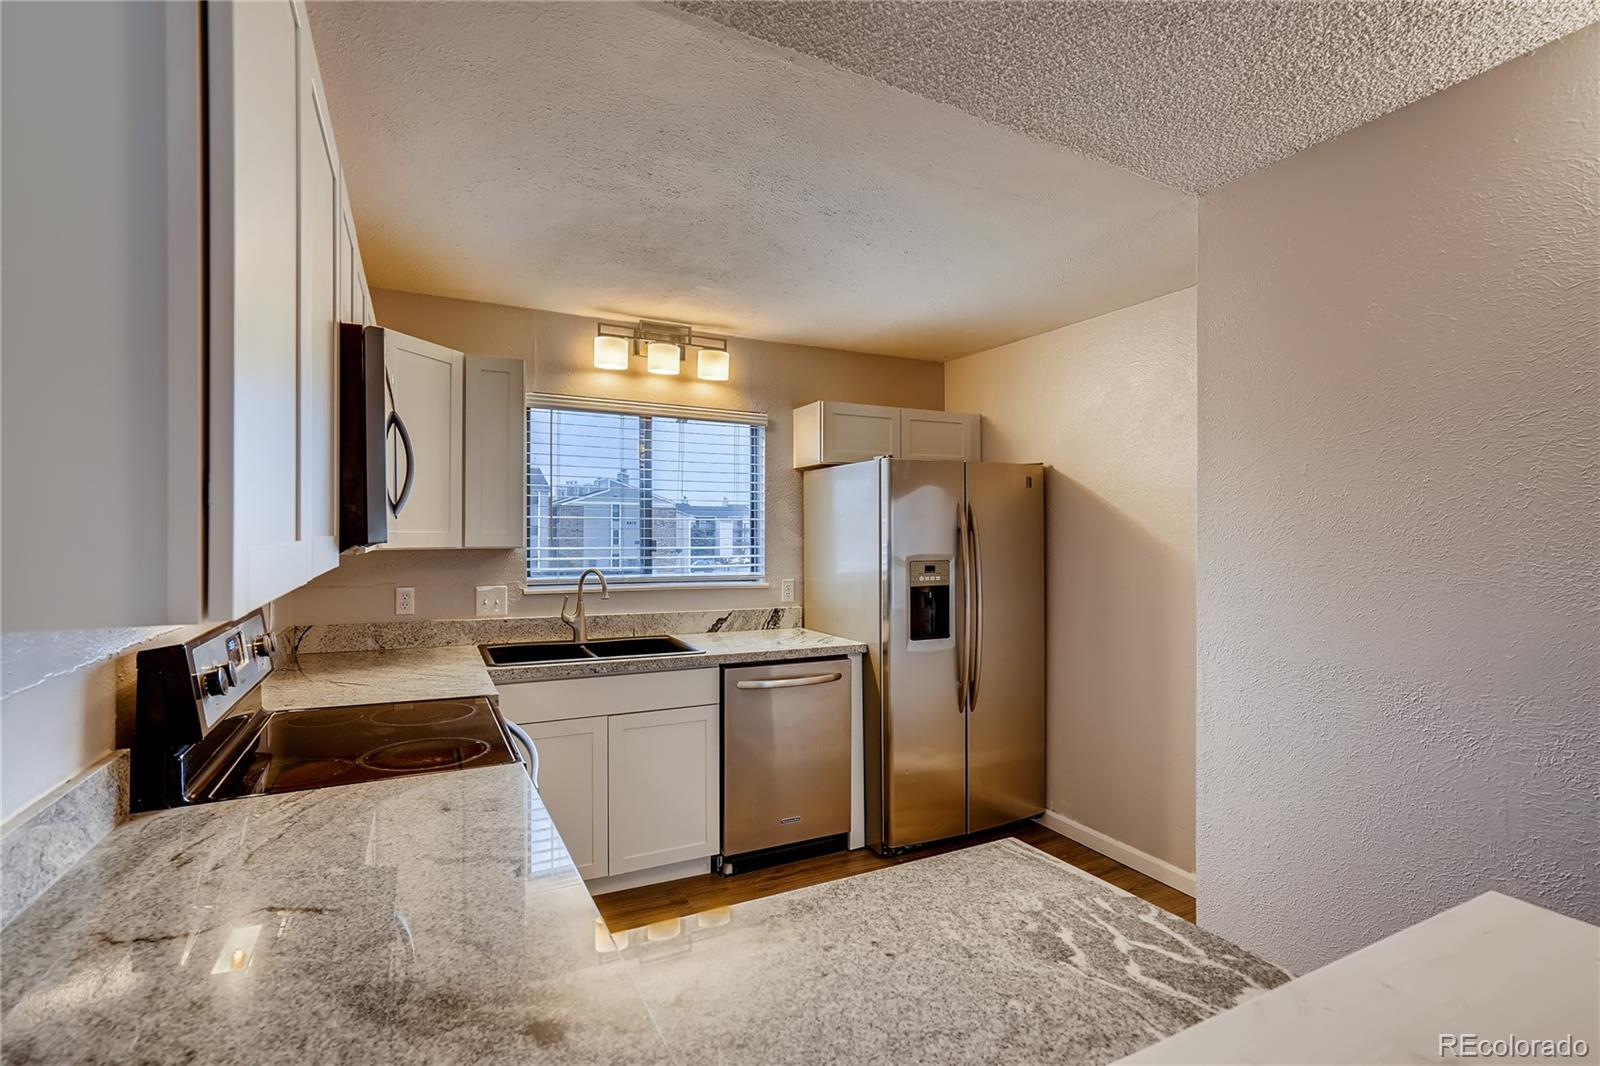 MLS# 7127267 - 4 - 2750 W 86th Avenue #168, Westminster, CO 80031